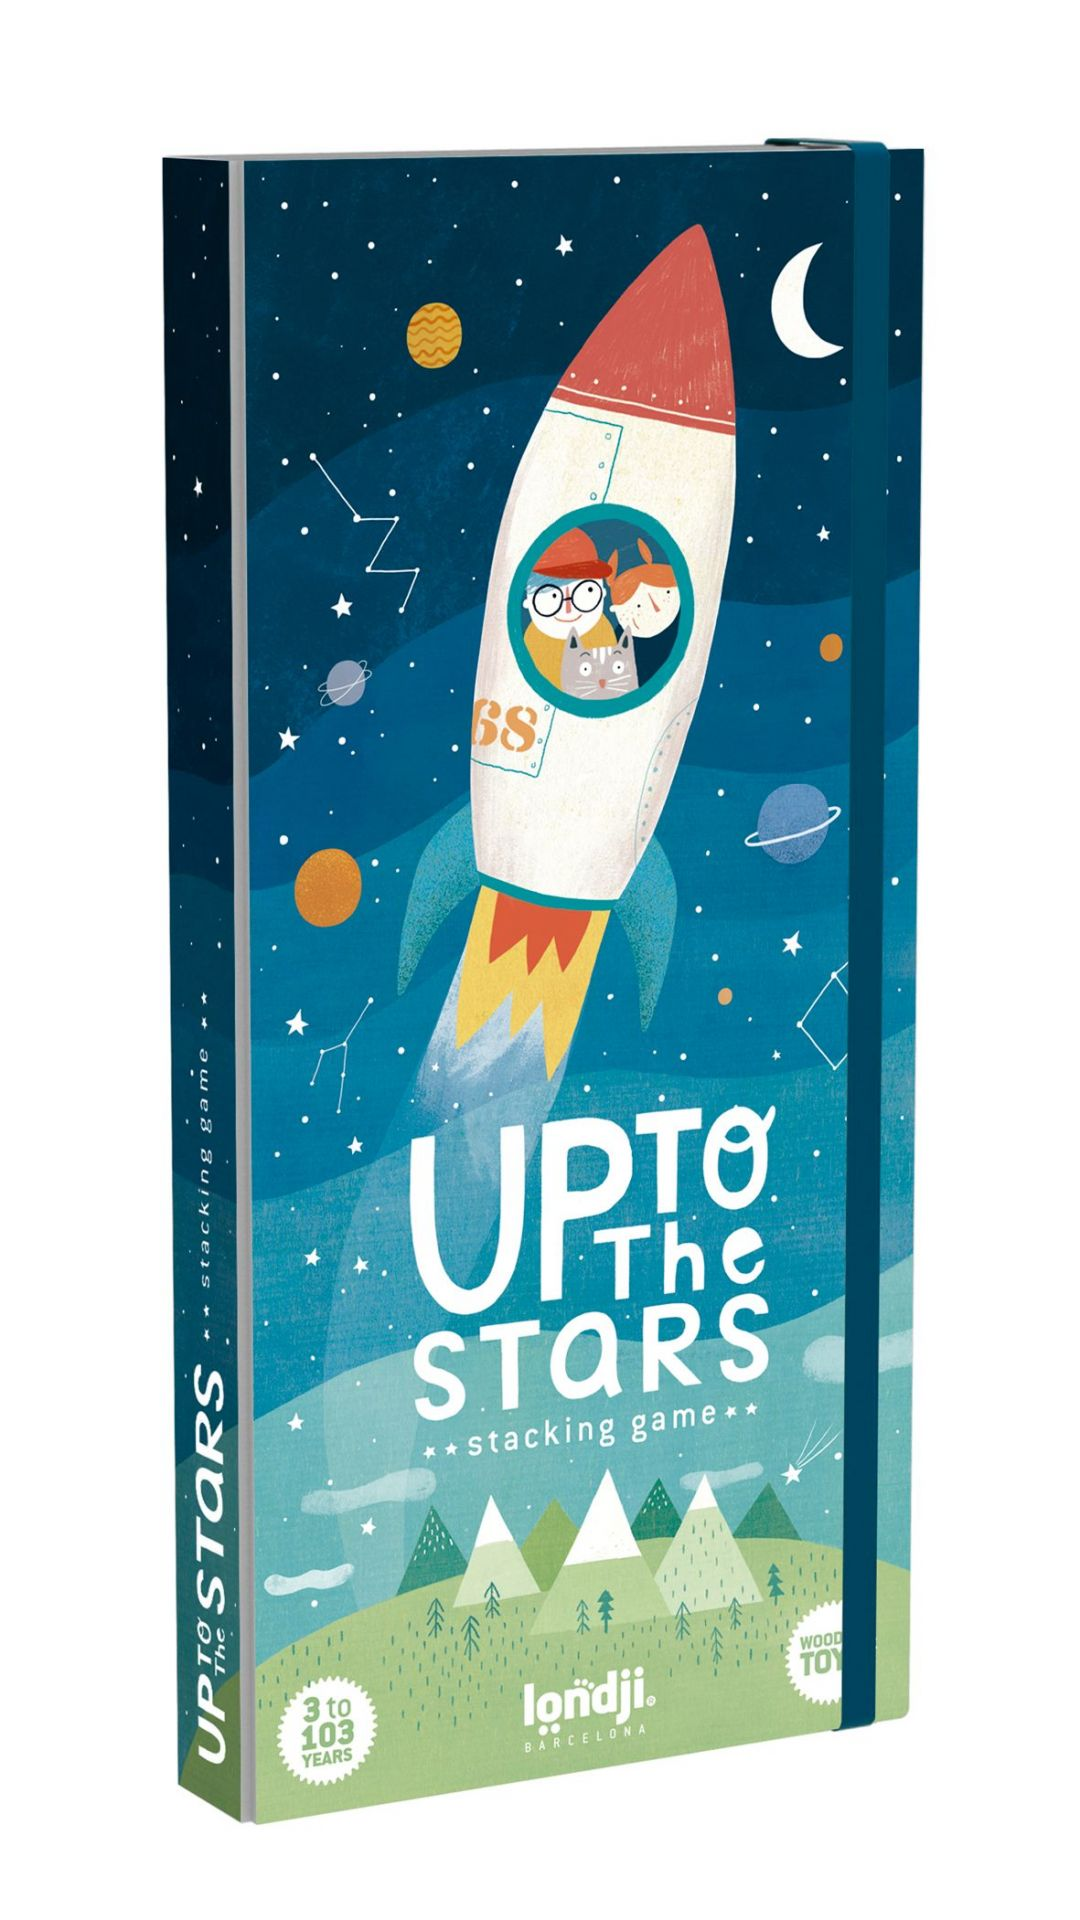 Stapelspiel - Up to the stars!